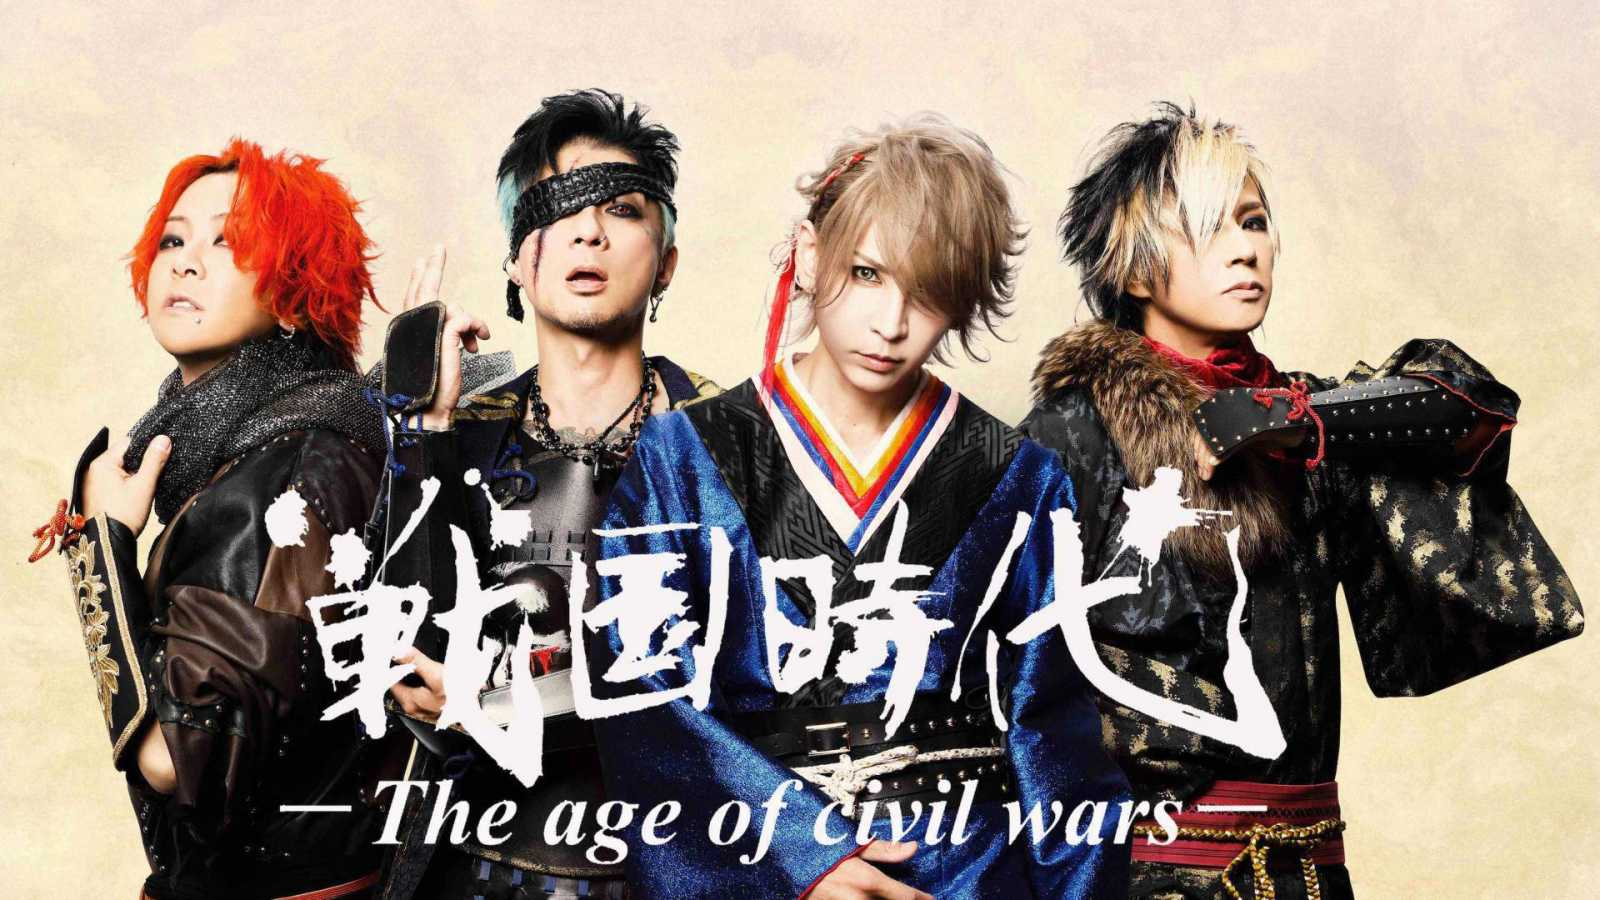 Sengoku jidai -The age of civil wars-  Announce Live Stream Concert © Sengoku jidai -The age of civil wars-. All rights reserved.